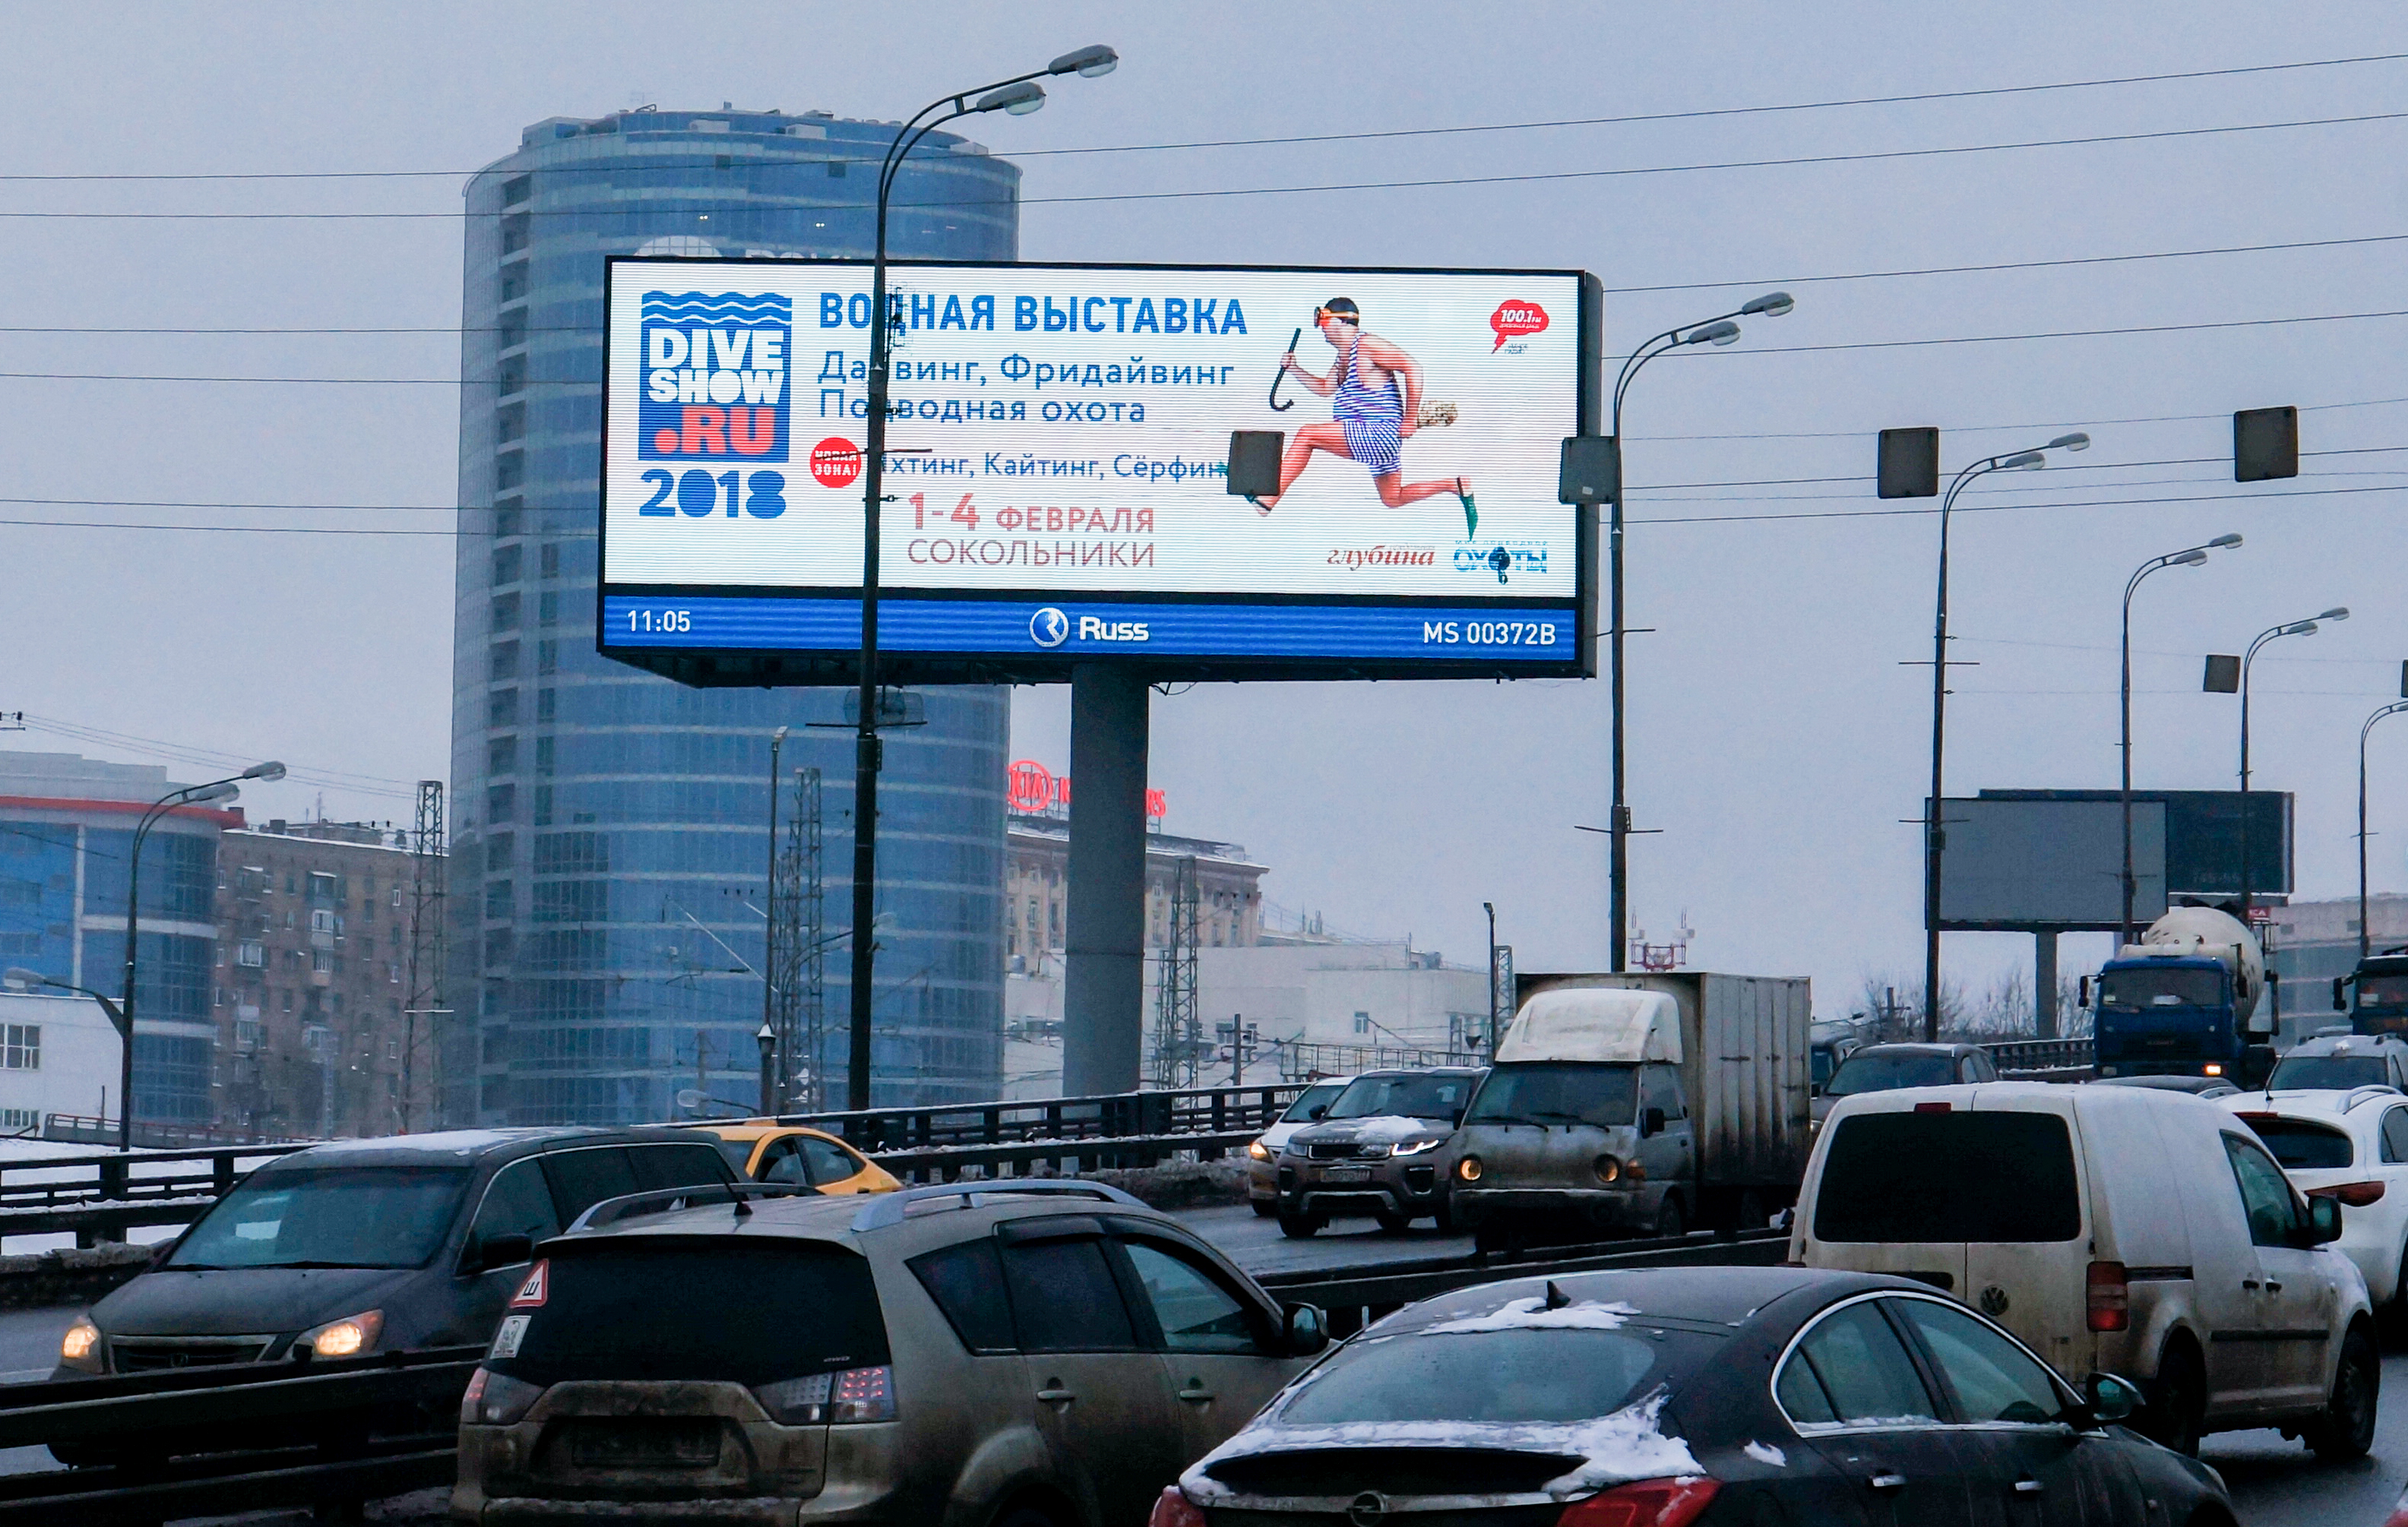 Moscow Dive Show: Outdoor advertising